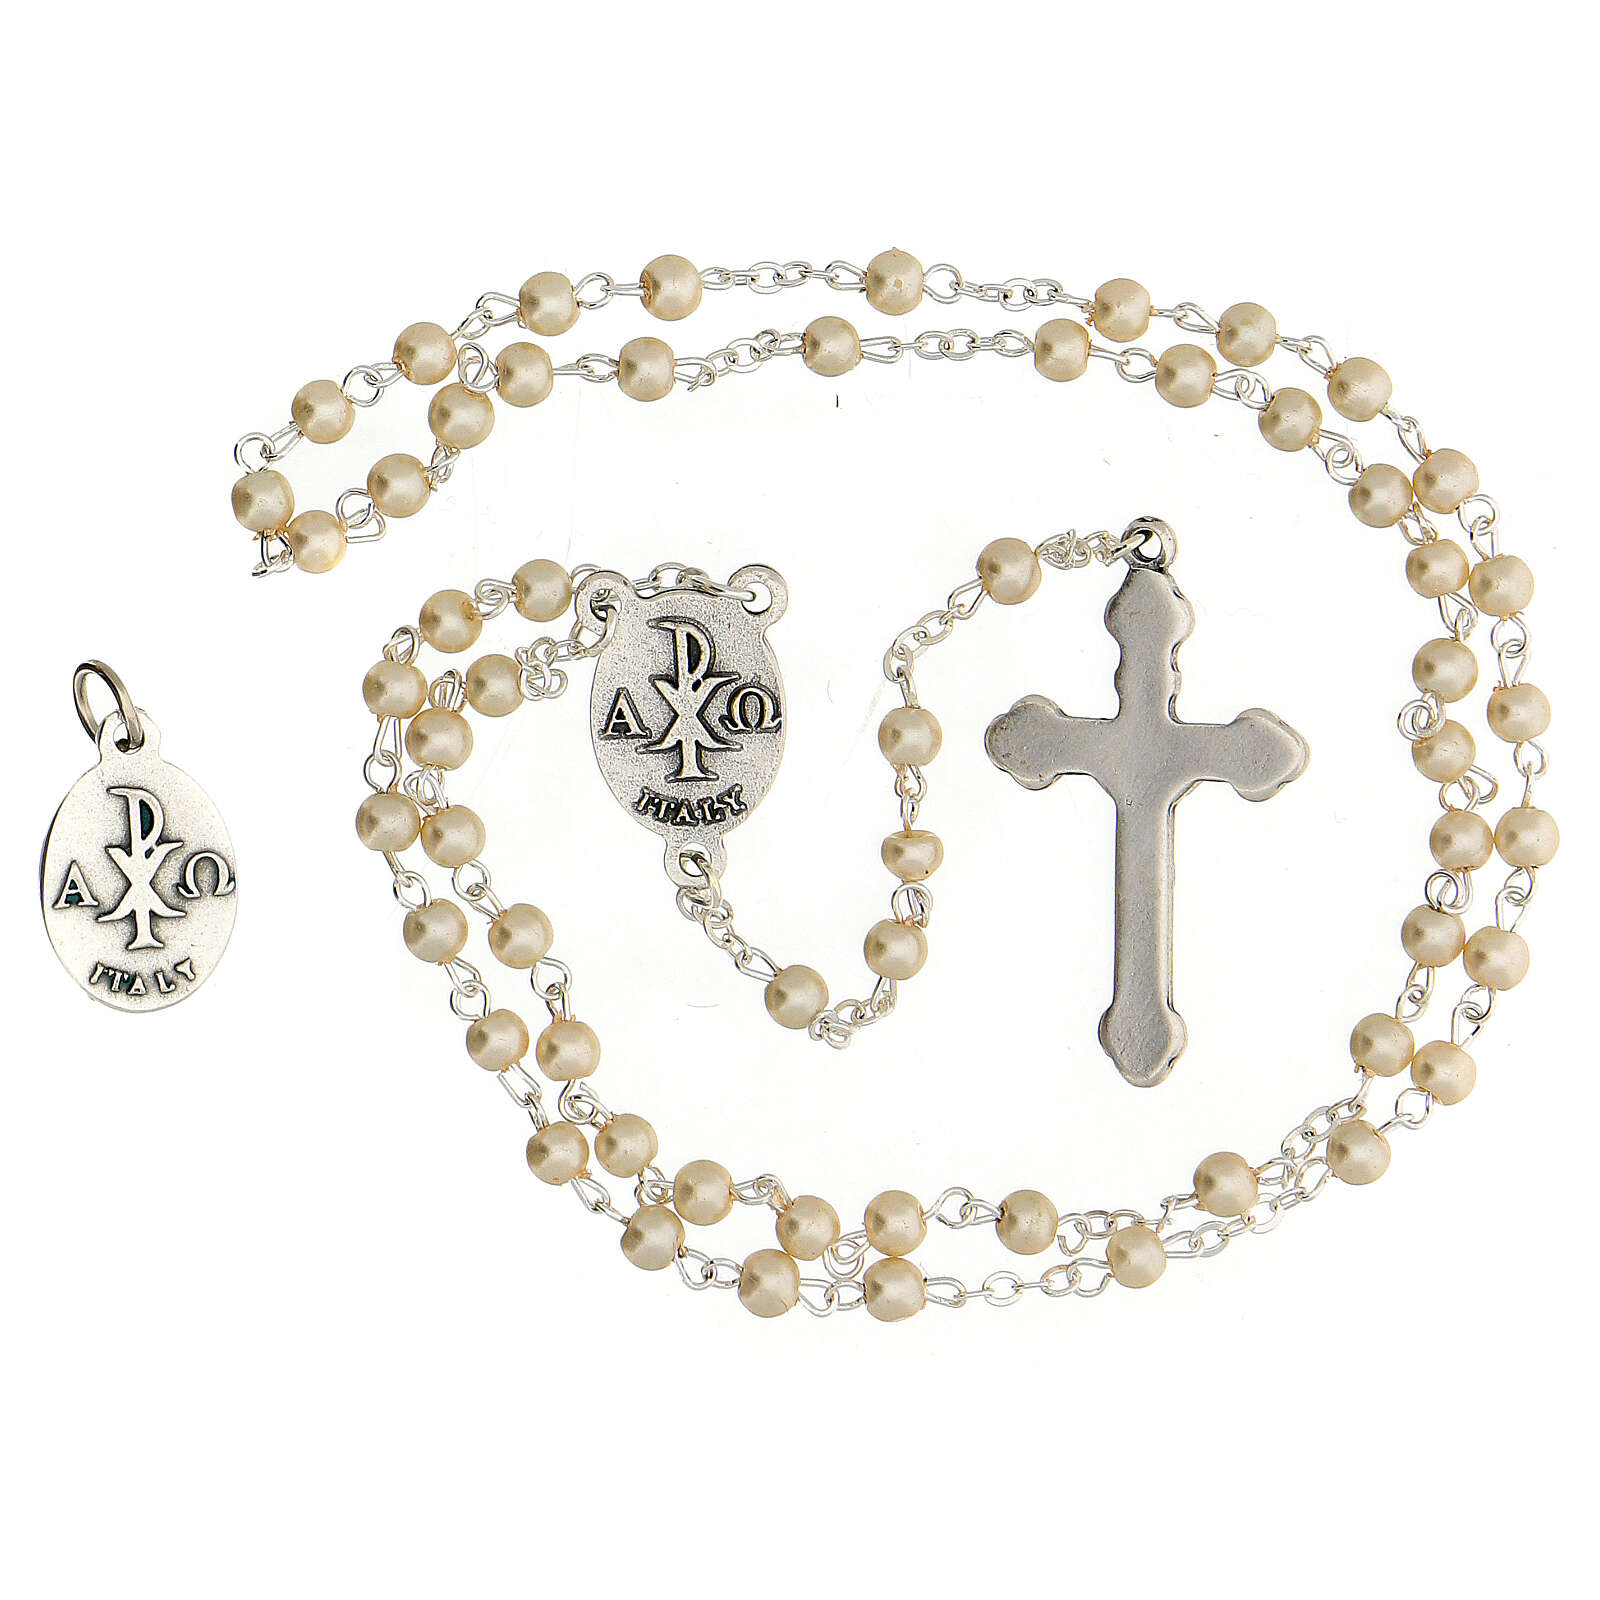 Communion souvenir set, golden rosary and pearl glass beads 3